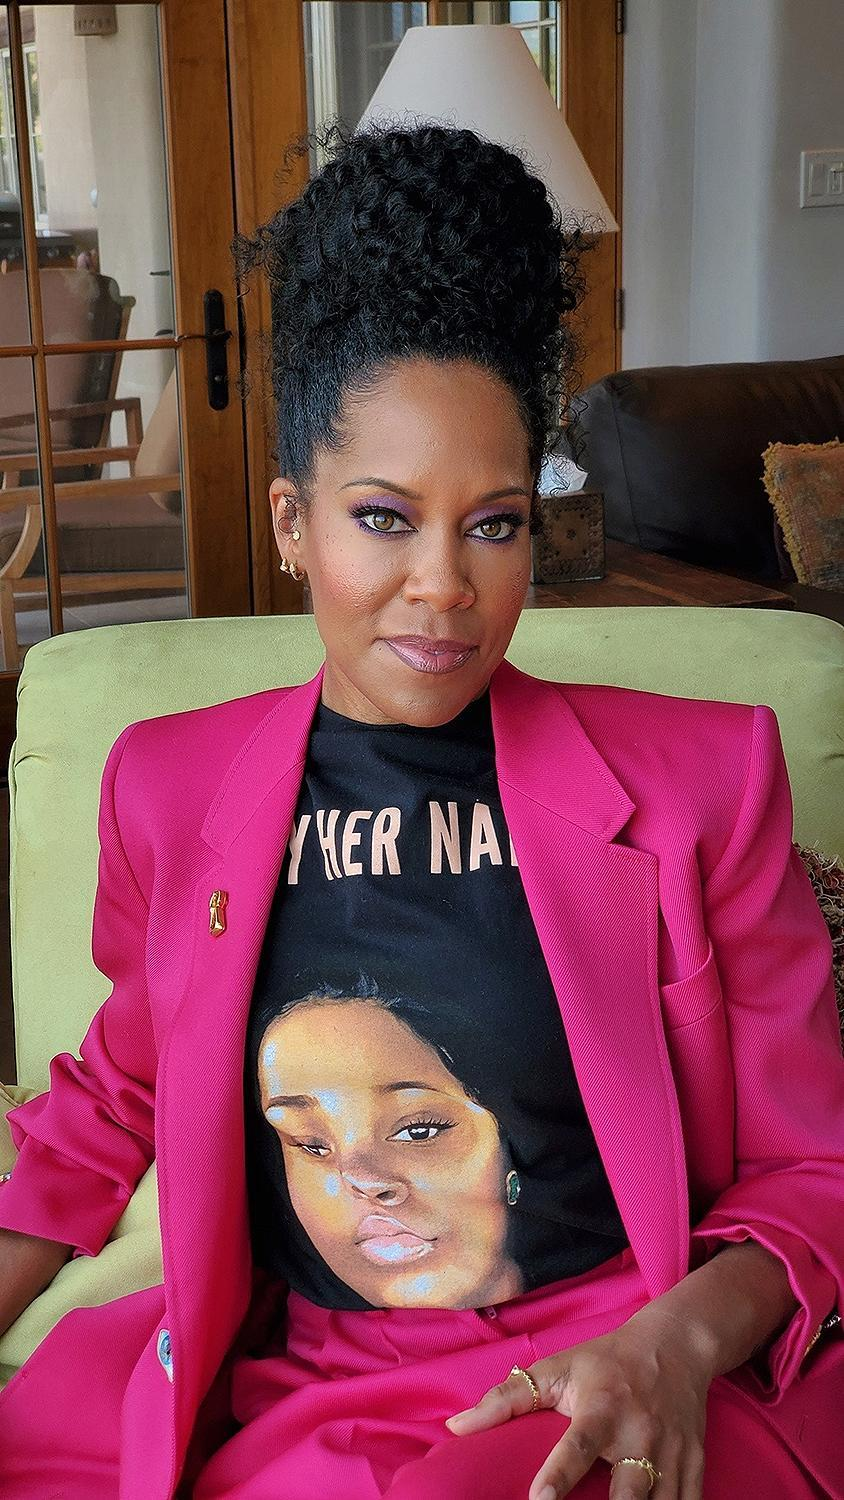 "<p>Instead of wearing a glamorous gown or comfortable pajamas to the virtual Emmys, <a href=""https://people.com/style/emmys-2020-regina-king-honors-breonna-taylor-statement-t-shirt/"" rel=""nofollow noopener"" target=""_blank"" data-ylk=""slk:King honored Breonna Taylor"" class=""link rapid-noclick-resp"">King honored Breonna Taylor</a>, the 26-year-old Black woman who was <a href=""https://people.com/crime/kentucky-emt-killed-by-police-family-seeks-answers/"" rel=""nofollow noopener"" target=""_blank"" data-ylk=""slk:fatally shot by police in a raid of her apartment"" class=""link rapid-noclick-resp"">fatally shot by police in a raid of her apartment</a> in an incident that sparked widespread protests, by wearing a <a href=""https://phenomenalwoman.us/collections/justice-for-breonna/products/breonna-taylor-t-shirt"" rel=""nofollow noopener"" target=""_blank"" data-ylk=""slk:Phenomenal Woman T-shirt"" class=""link rapid-noclick-resp"">Phenomenal Woman T-shirt</a> emblazoned with Taylor's face across the front. Across the top of the shirt read the phrase, ""SAY HER NAME,"" in all capital letters.</p> <p>King topped off the <a href=""https://phenomenalwoman.us/collections/justice-for-breonna/products/breonna-taylor-t-shirt"" rel=""nofollow noopener"" target=""_blank"" data-ylk=""slk:statement-making shirt"" class=""link rapid-noclick-resp"">statement-making shirt</a> (all profits benefit the <a href=""https://justiceforbreonna.org/"" rel=""nofollow noopener"" target=""_blank"" data-ylk=""slk:Breonna Taylor Foundation"" class=""link rapid-noclick-resp"">Breonna Taylor Foundation</a>) with a hot pink pantsuit by Schiaparelli.</p>"